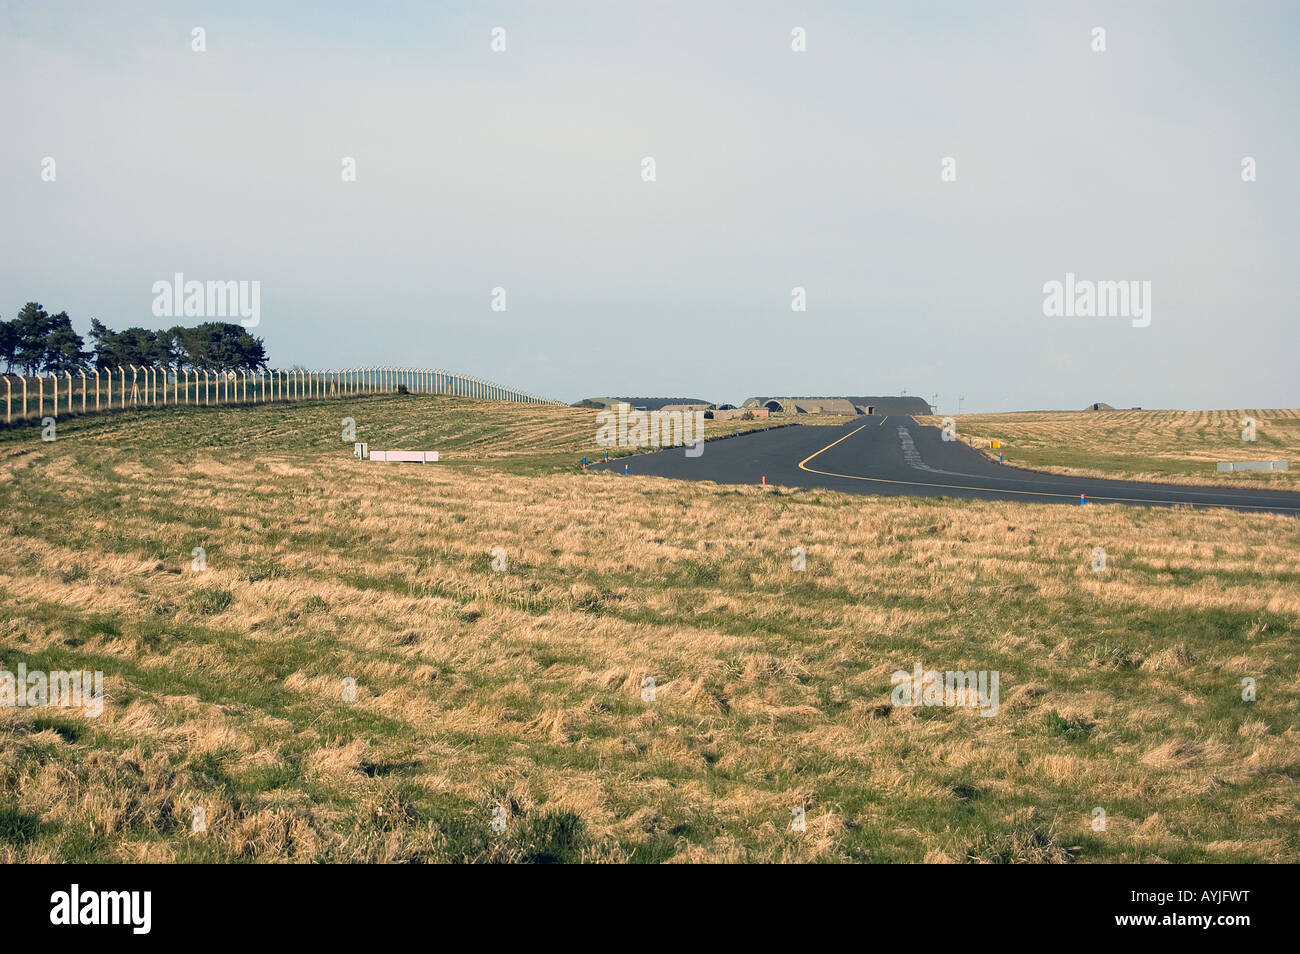 The taxiing strip at RAF Lossiemouth, Scotland. - Stock Image